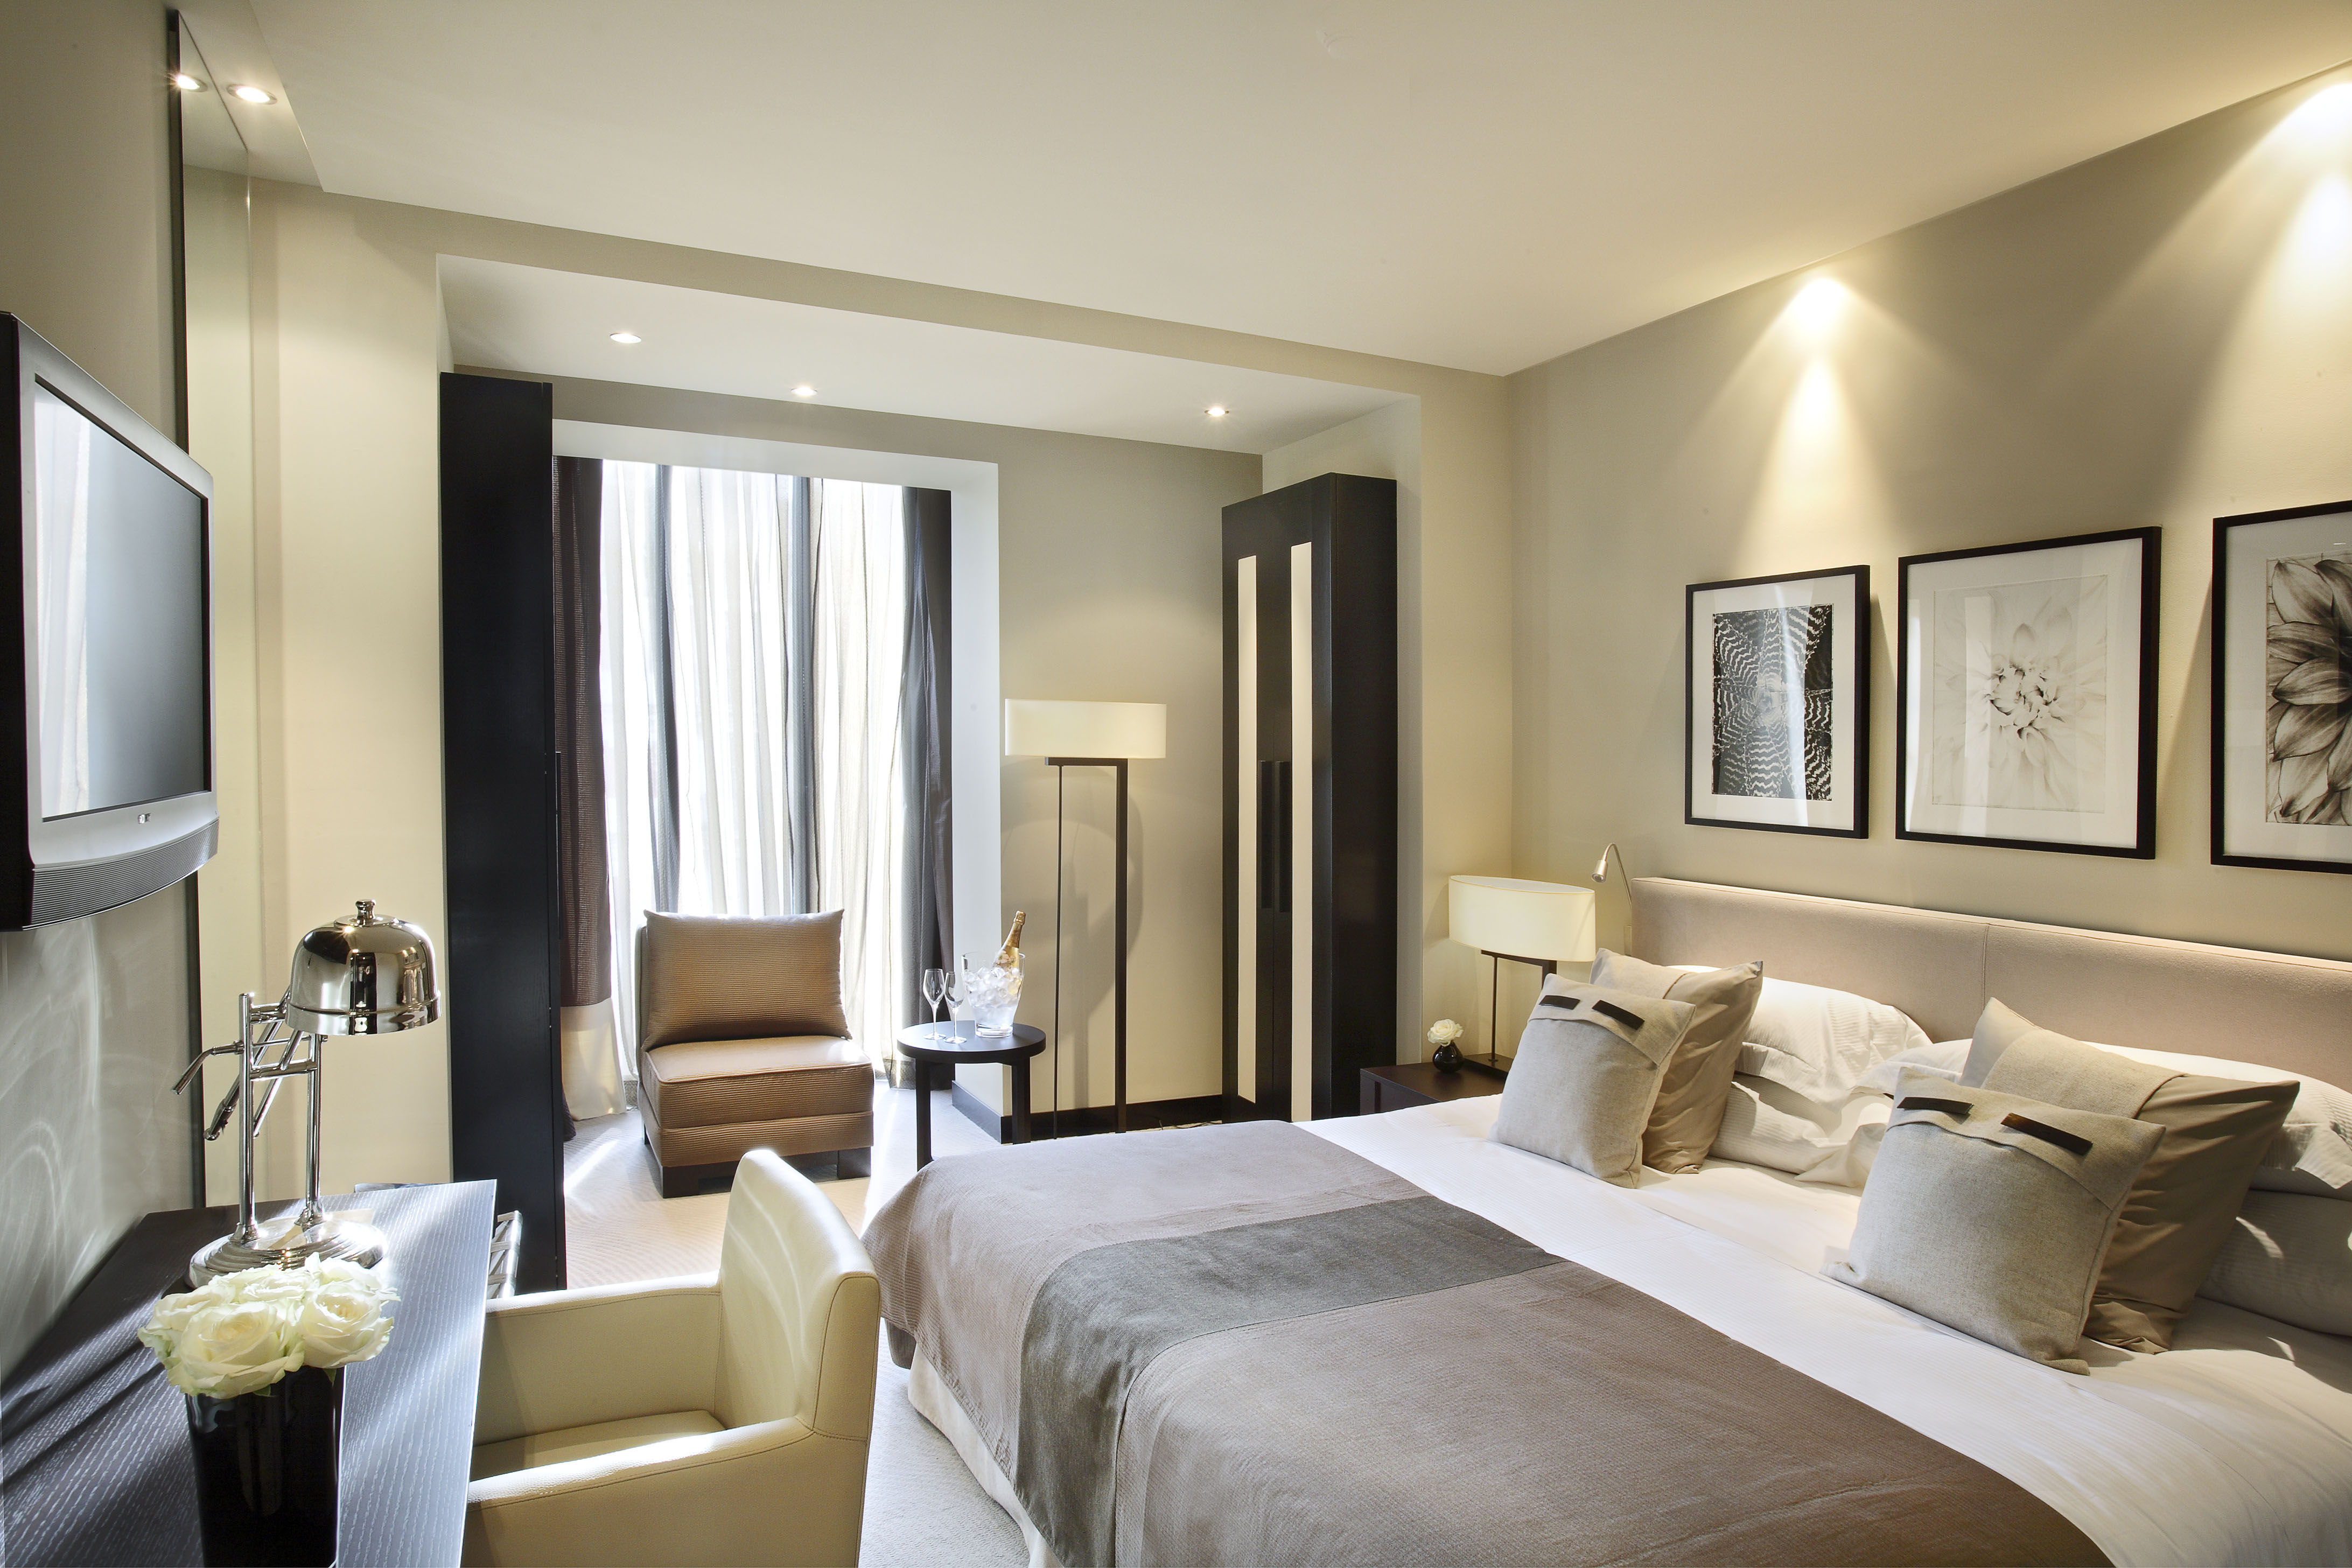 Hotel Design: Home Away From Home